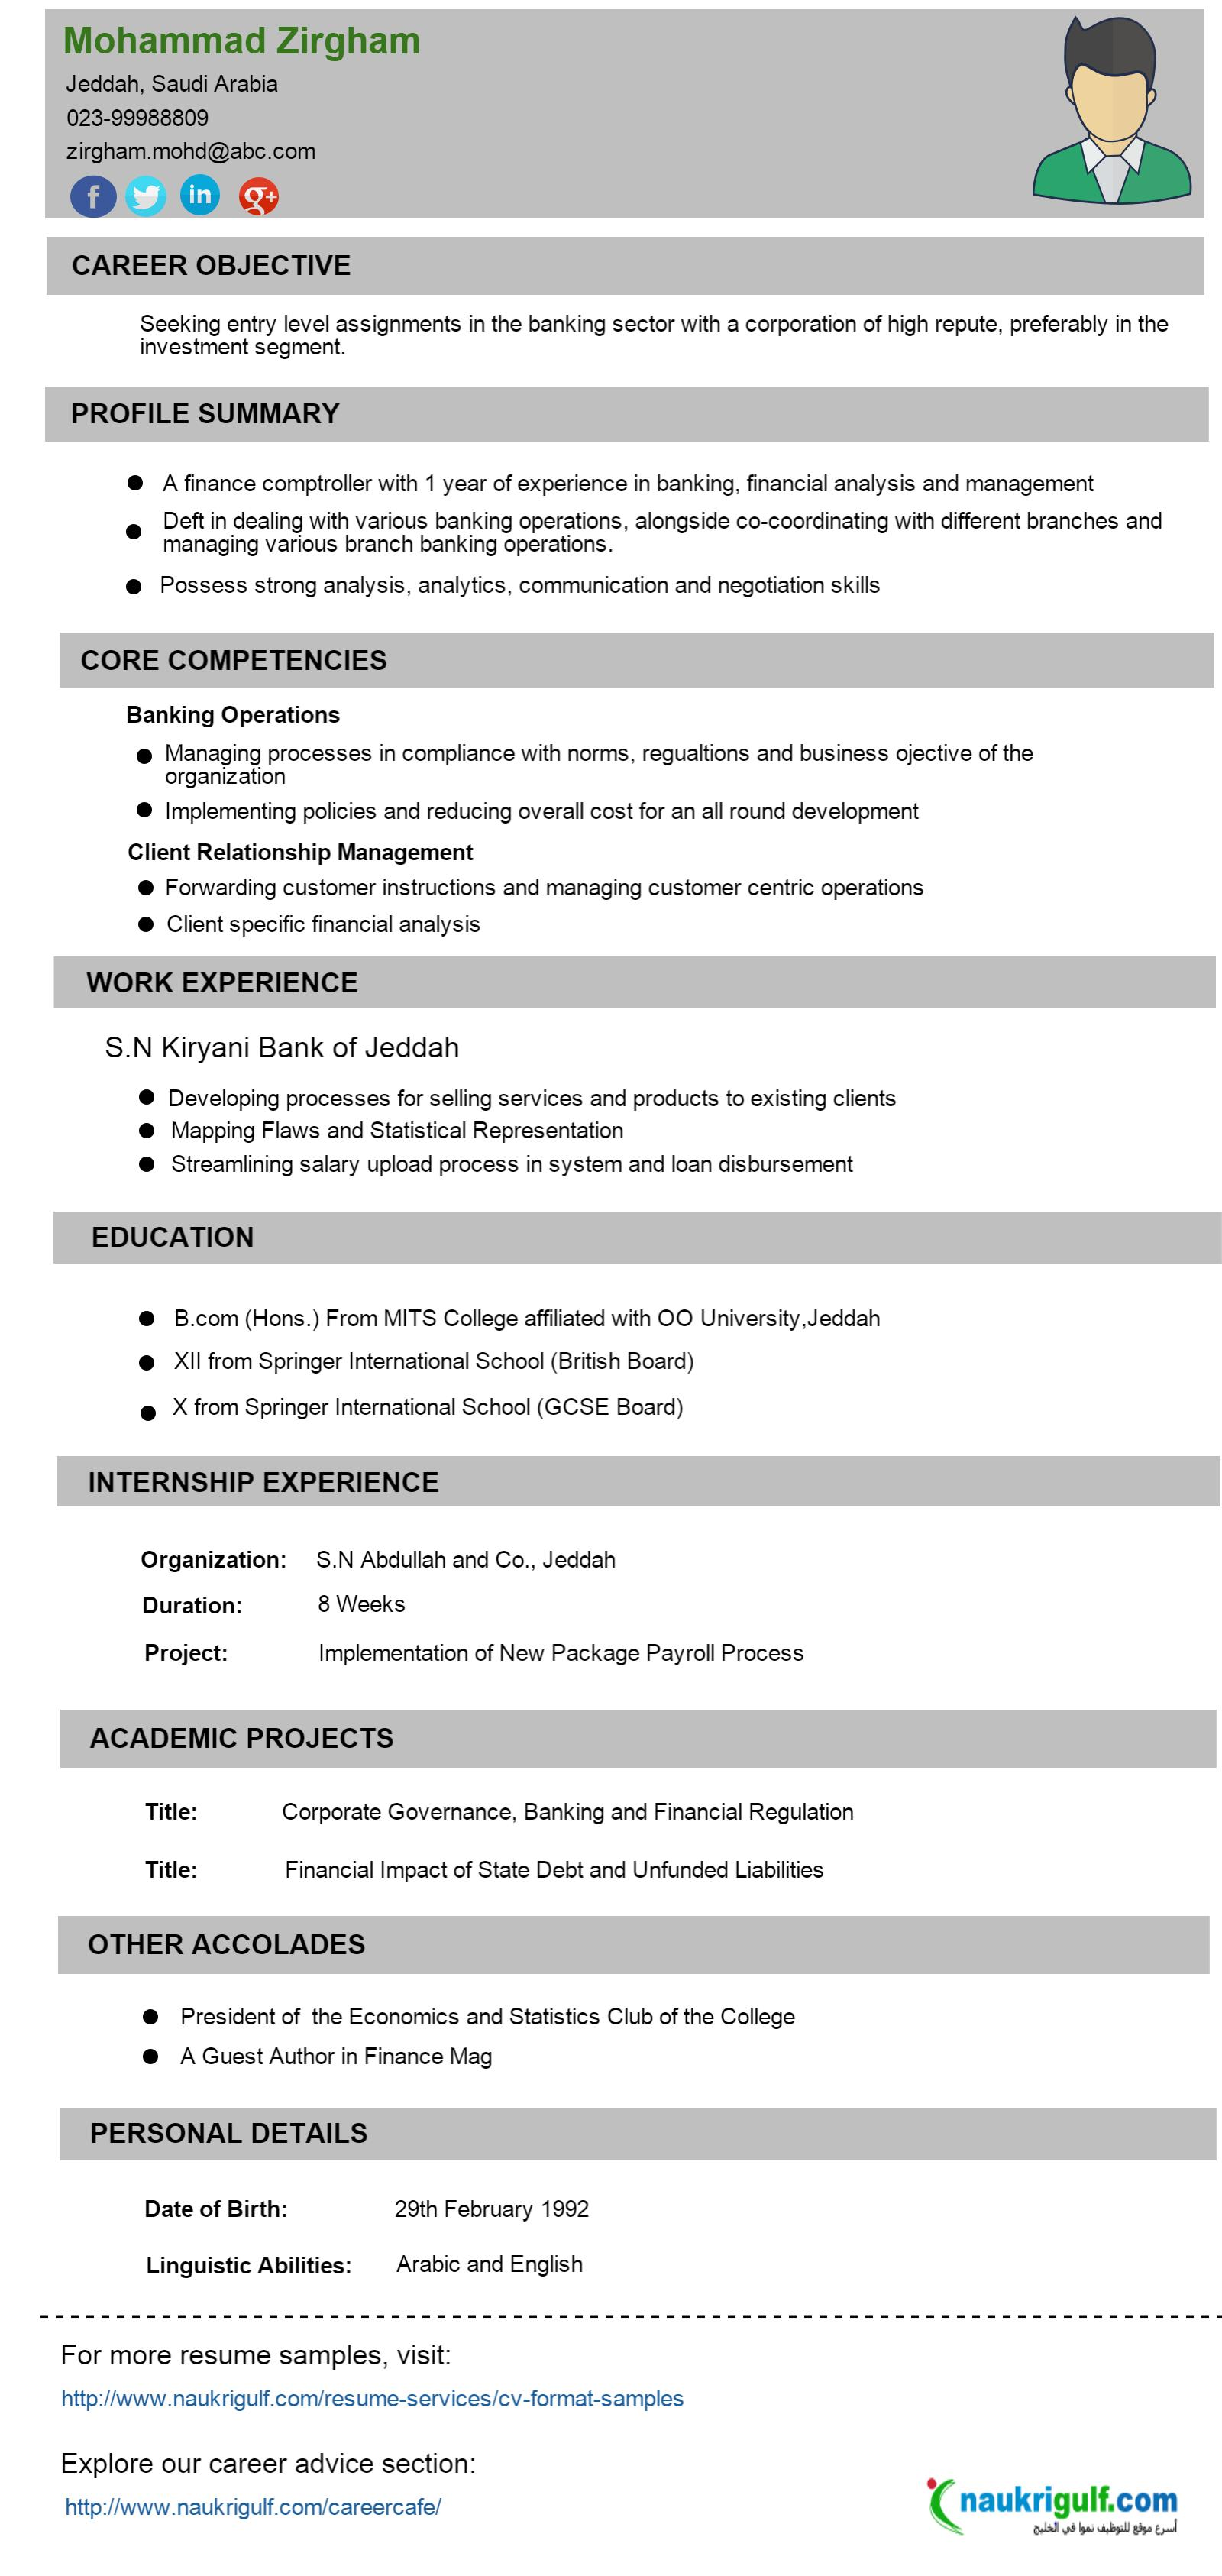 tips to write a resume for a banking and finance job